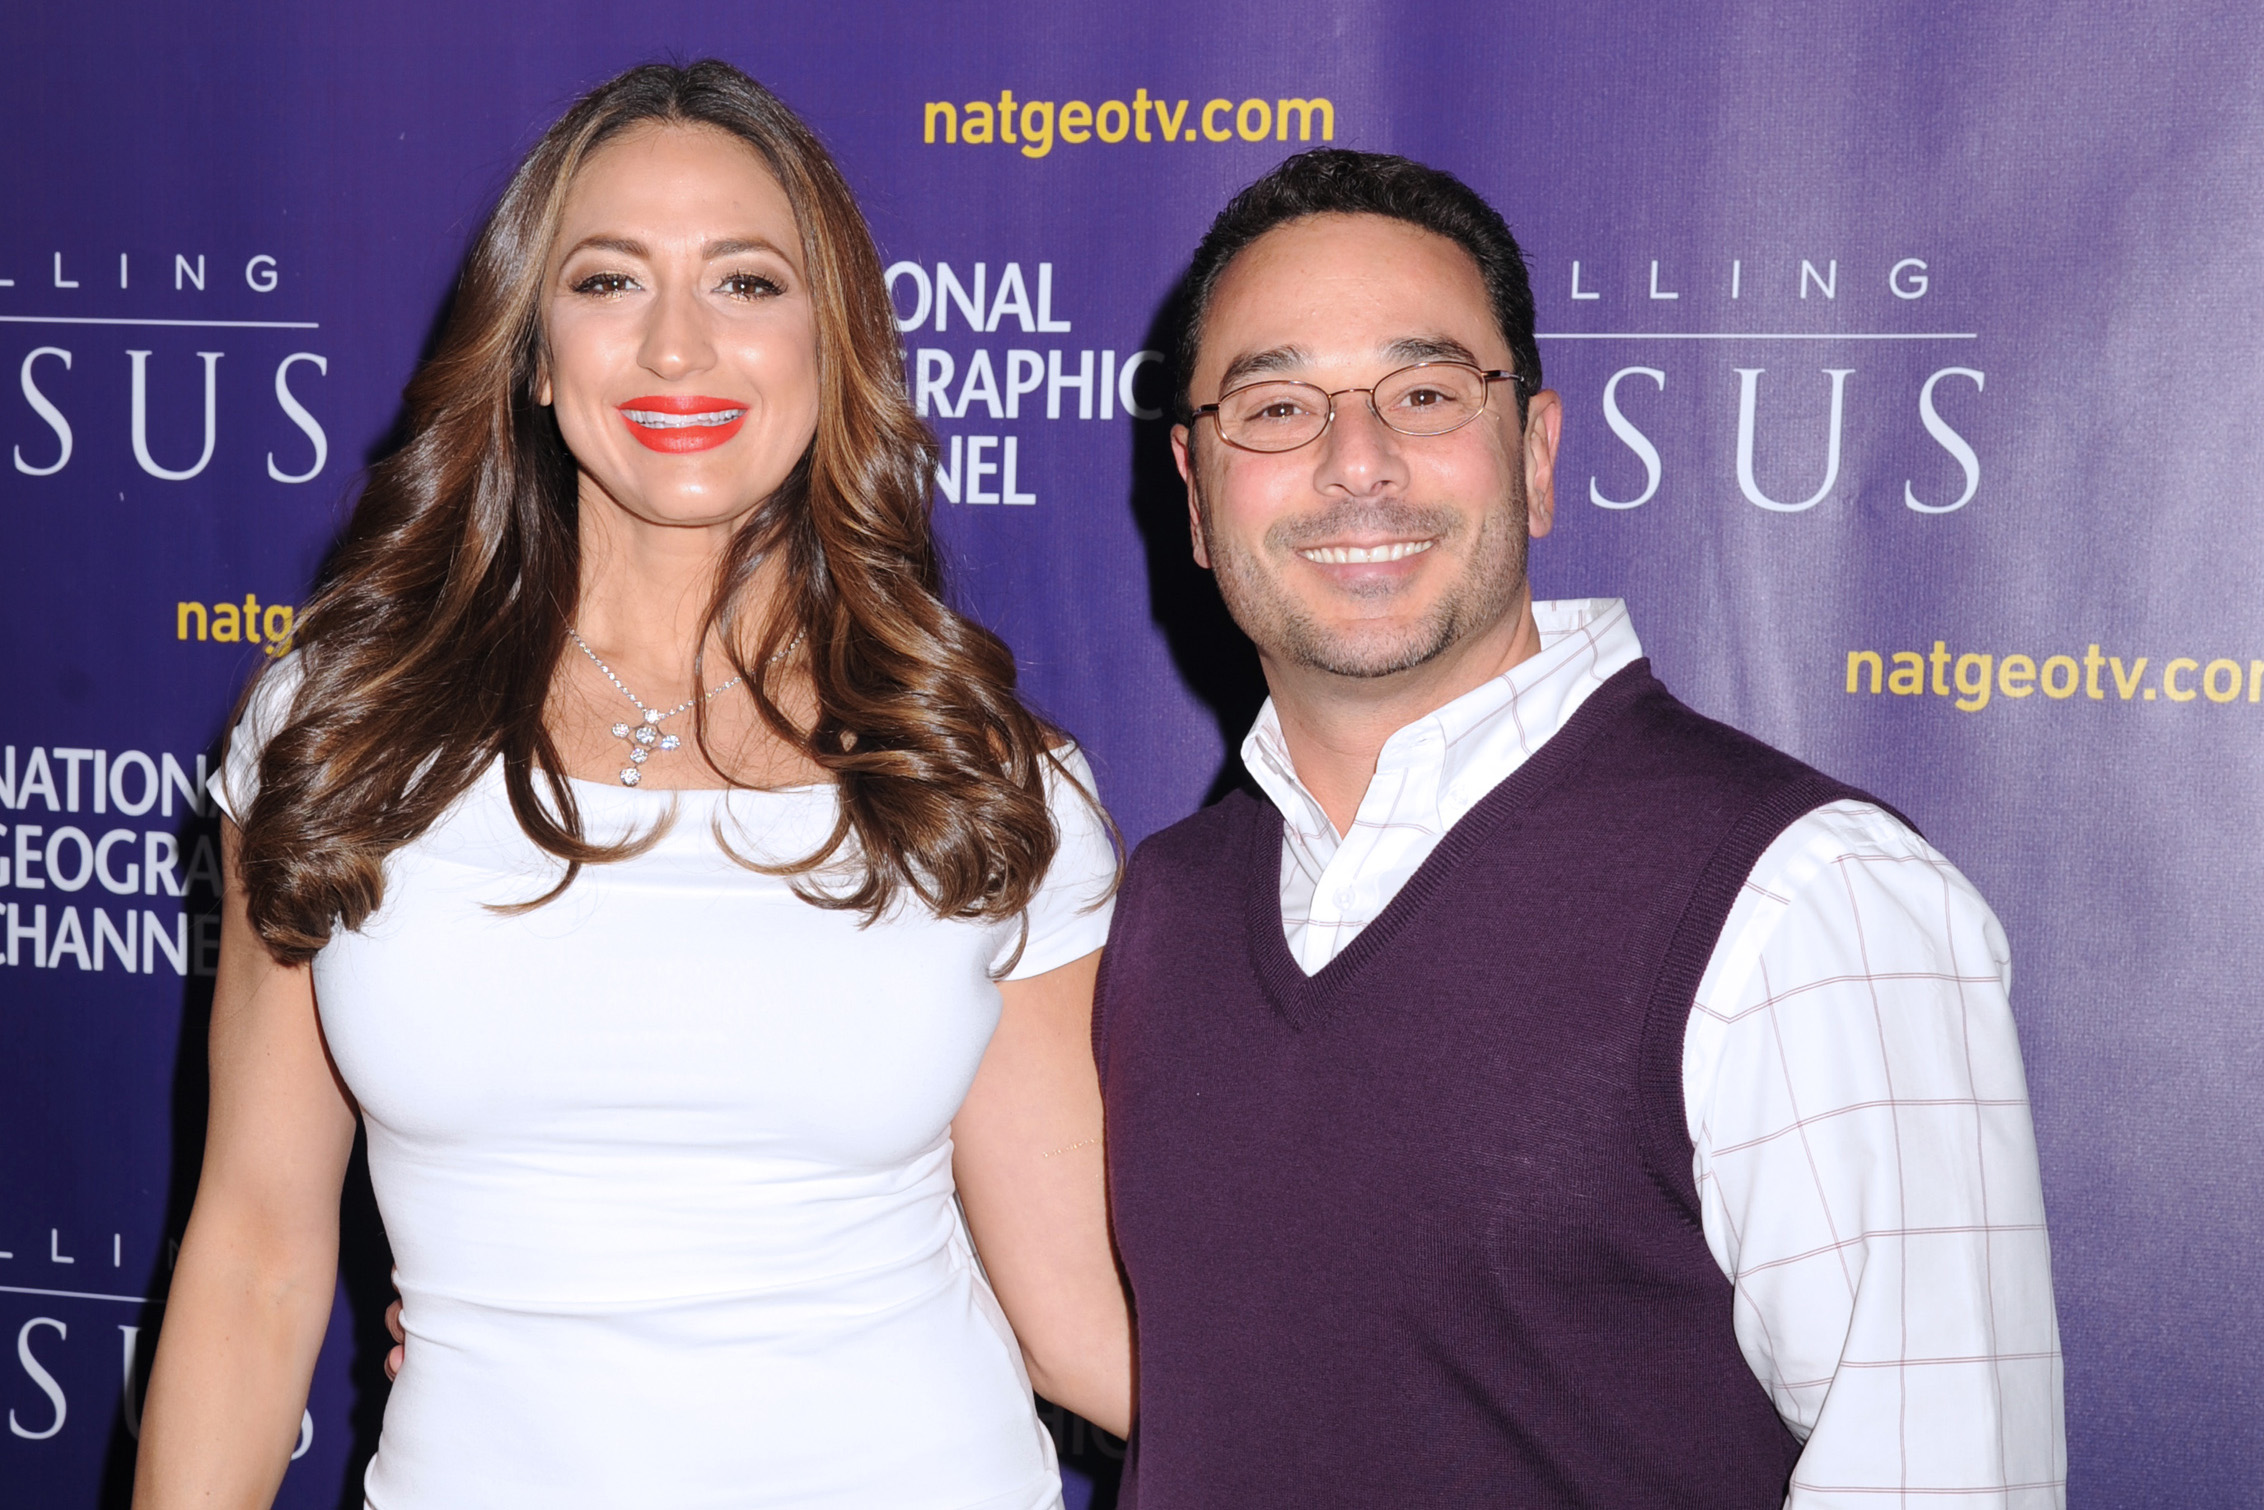 Amber Marchese Says She Cheated on Jim Marchese With a Woman